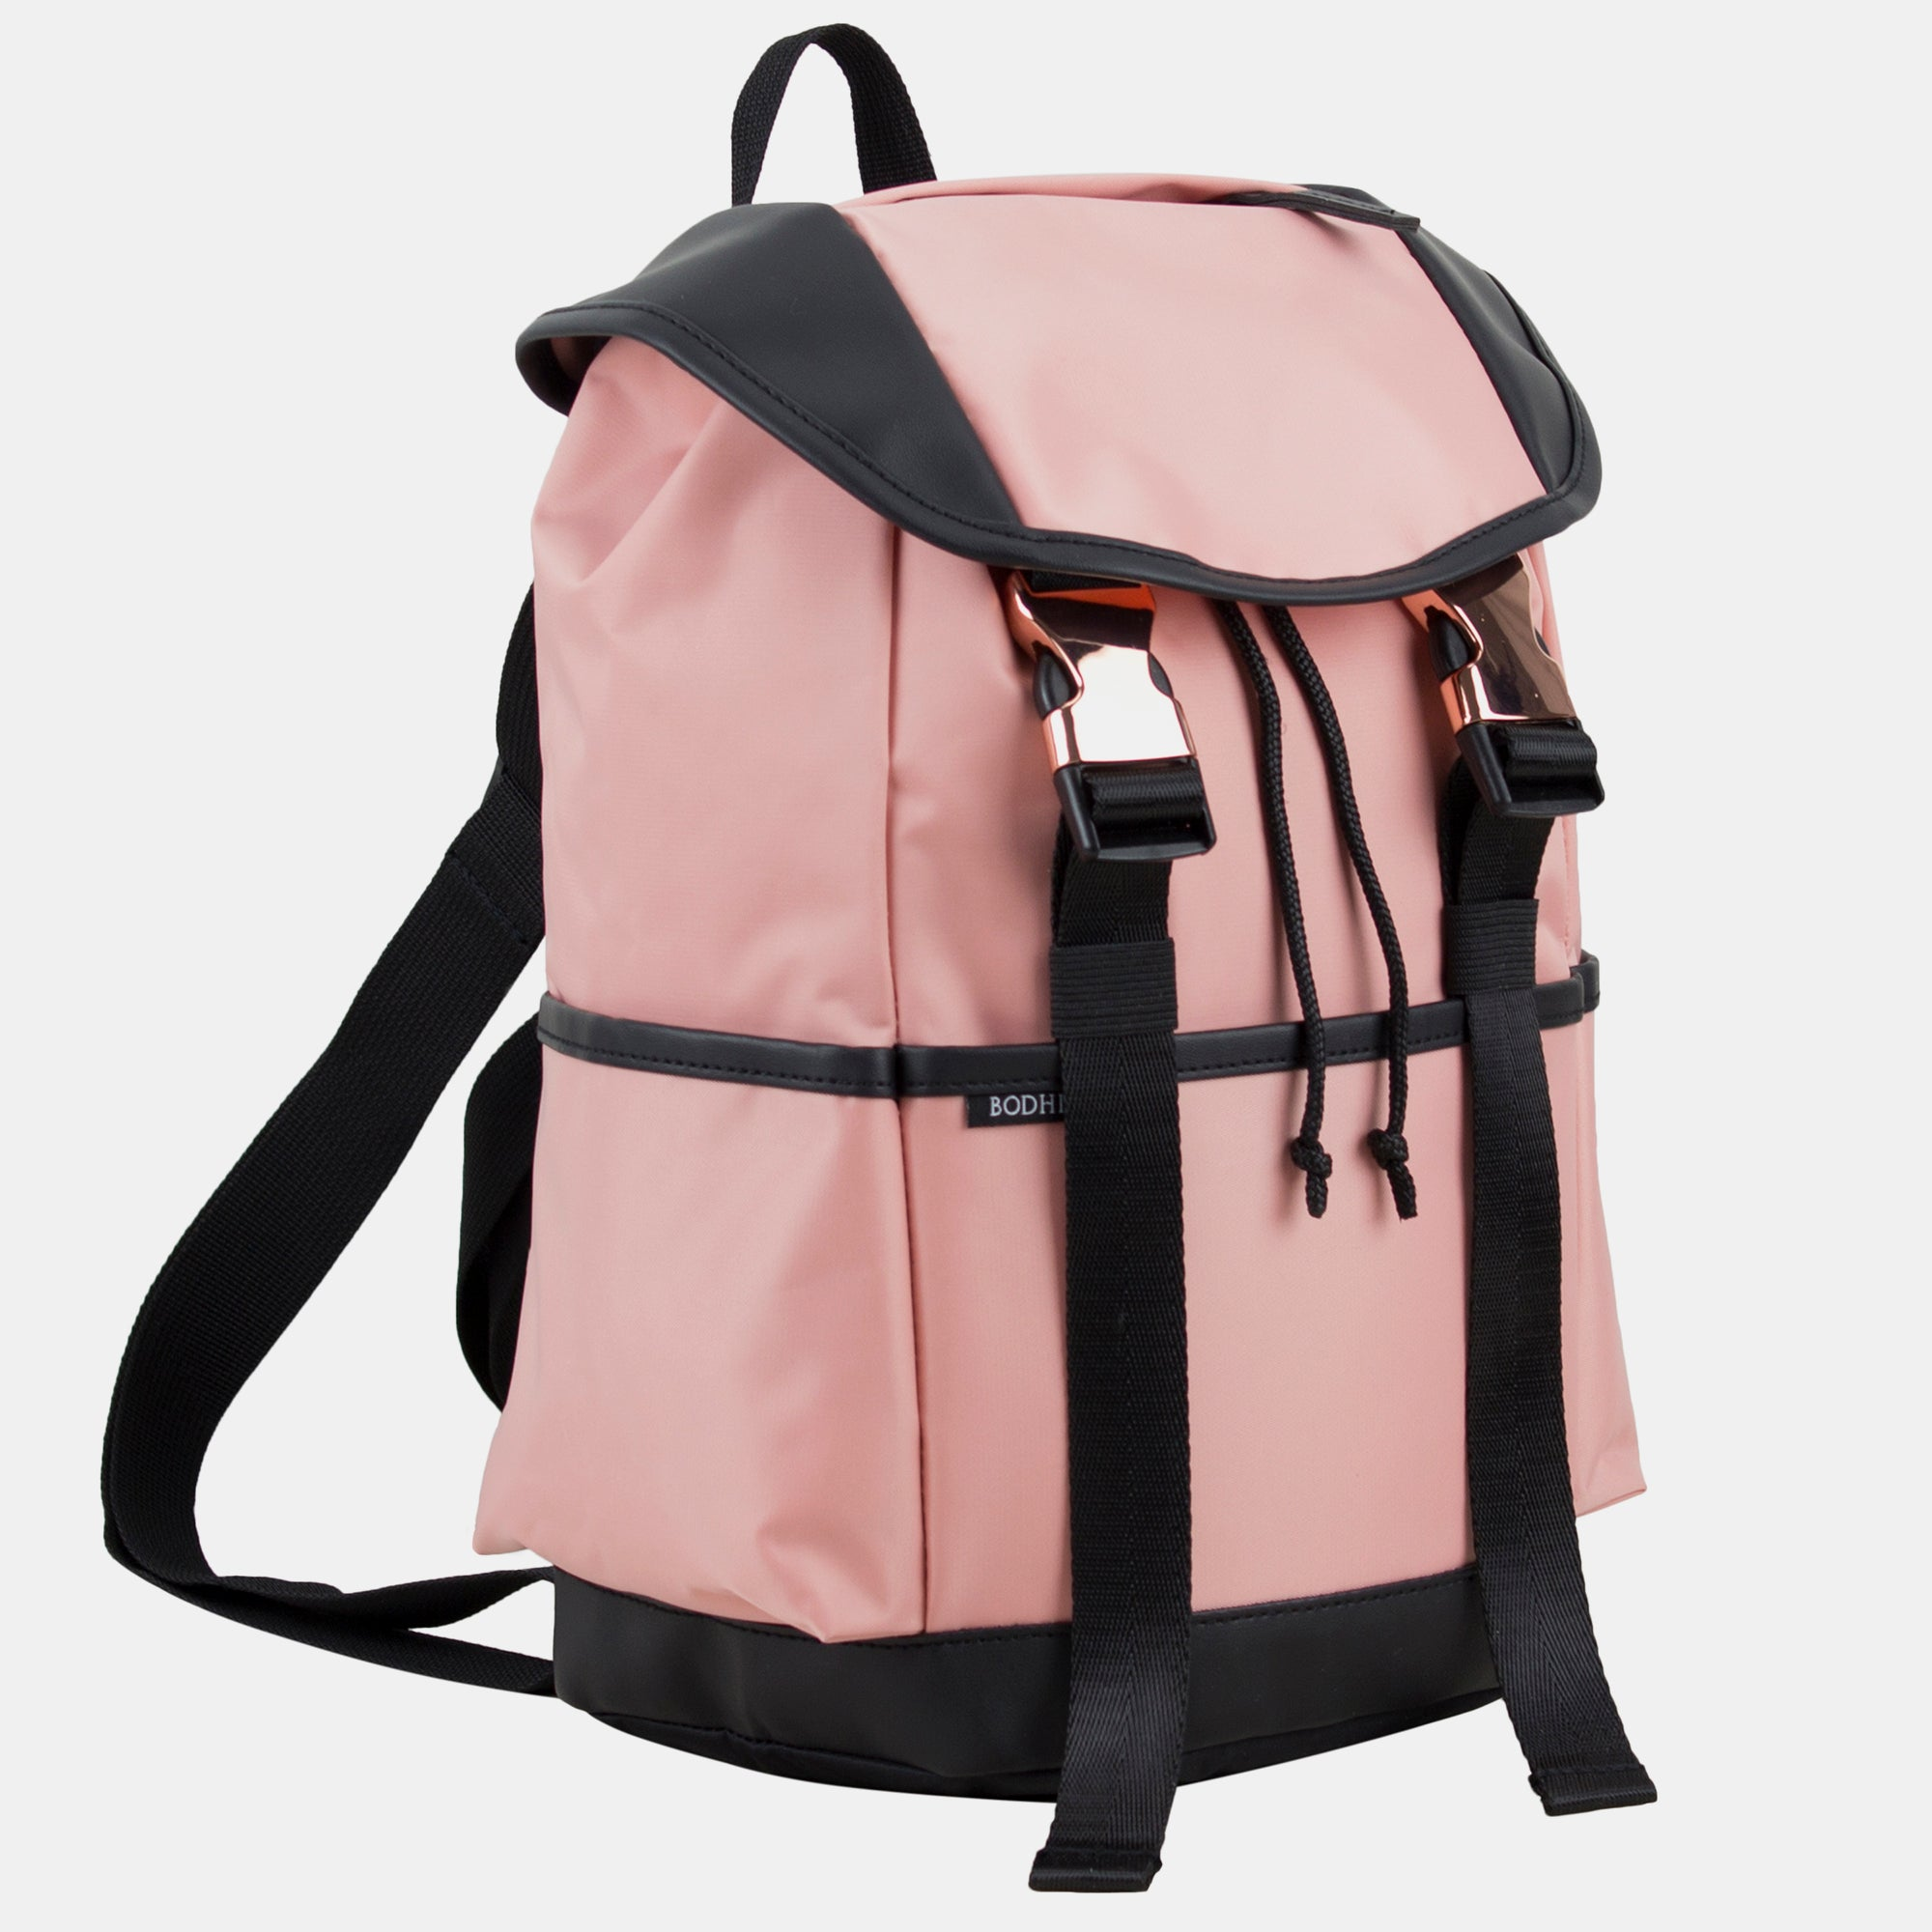 Fuel Drawstring Backpack With Double Rose Gold Buckles